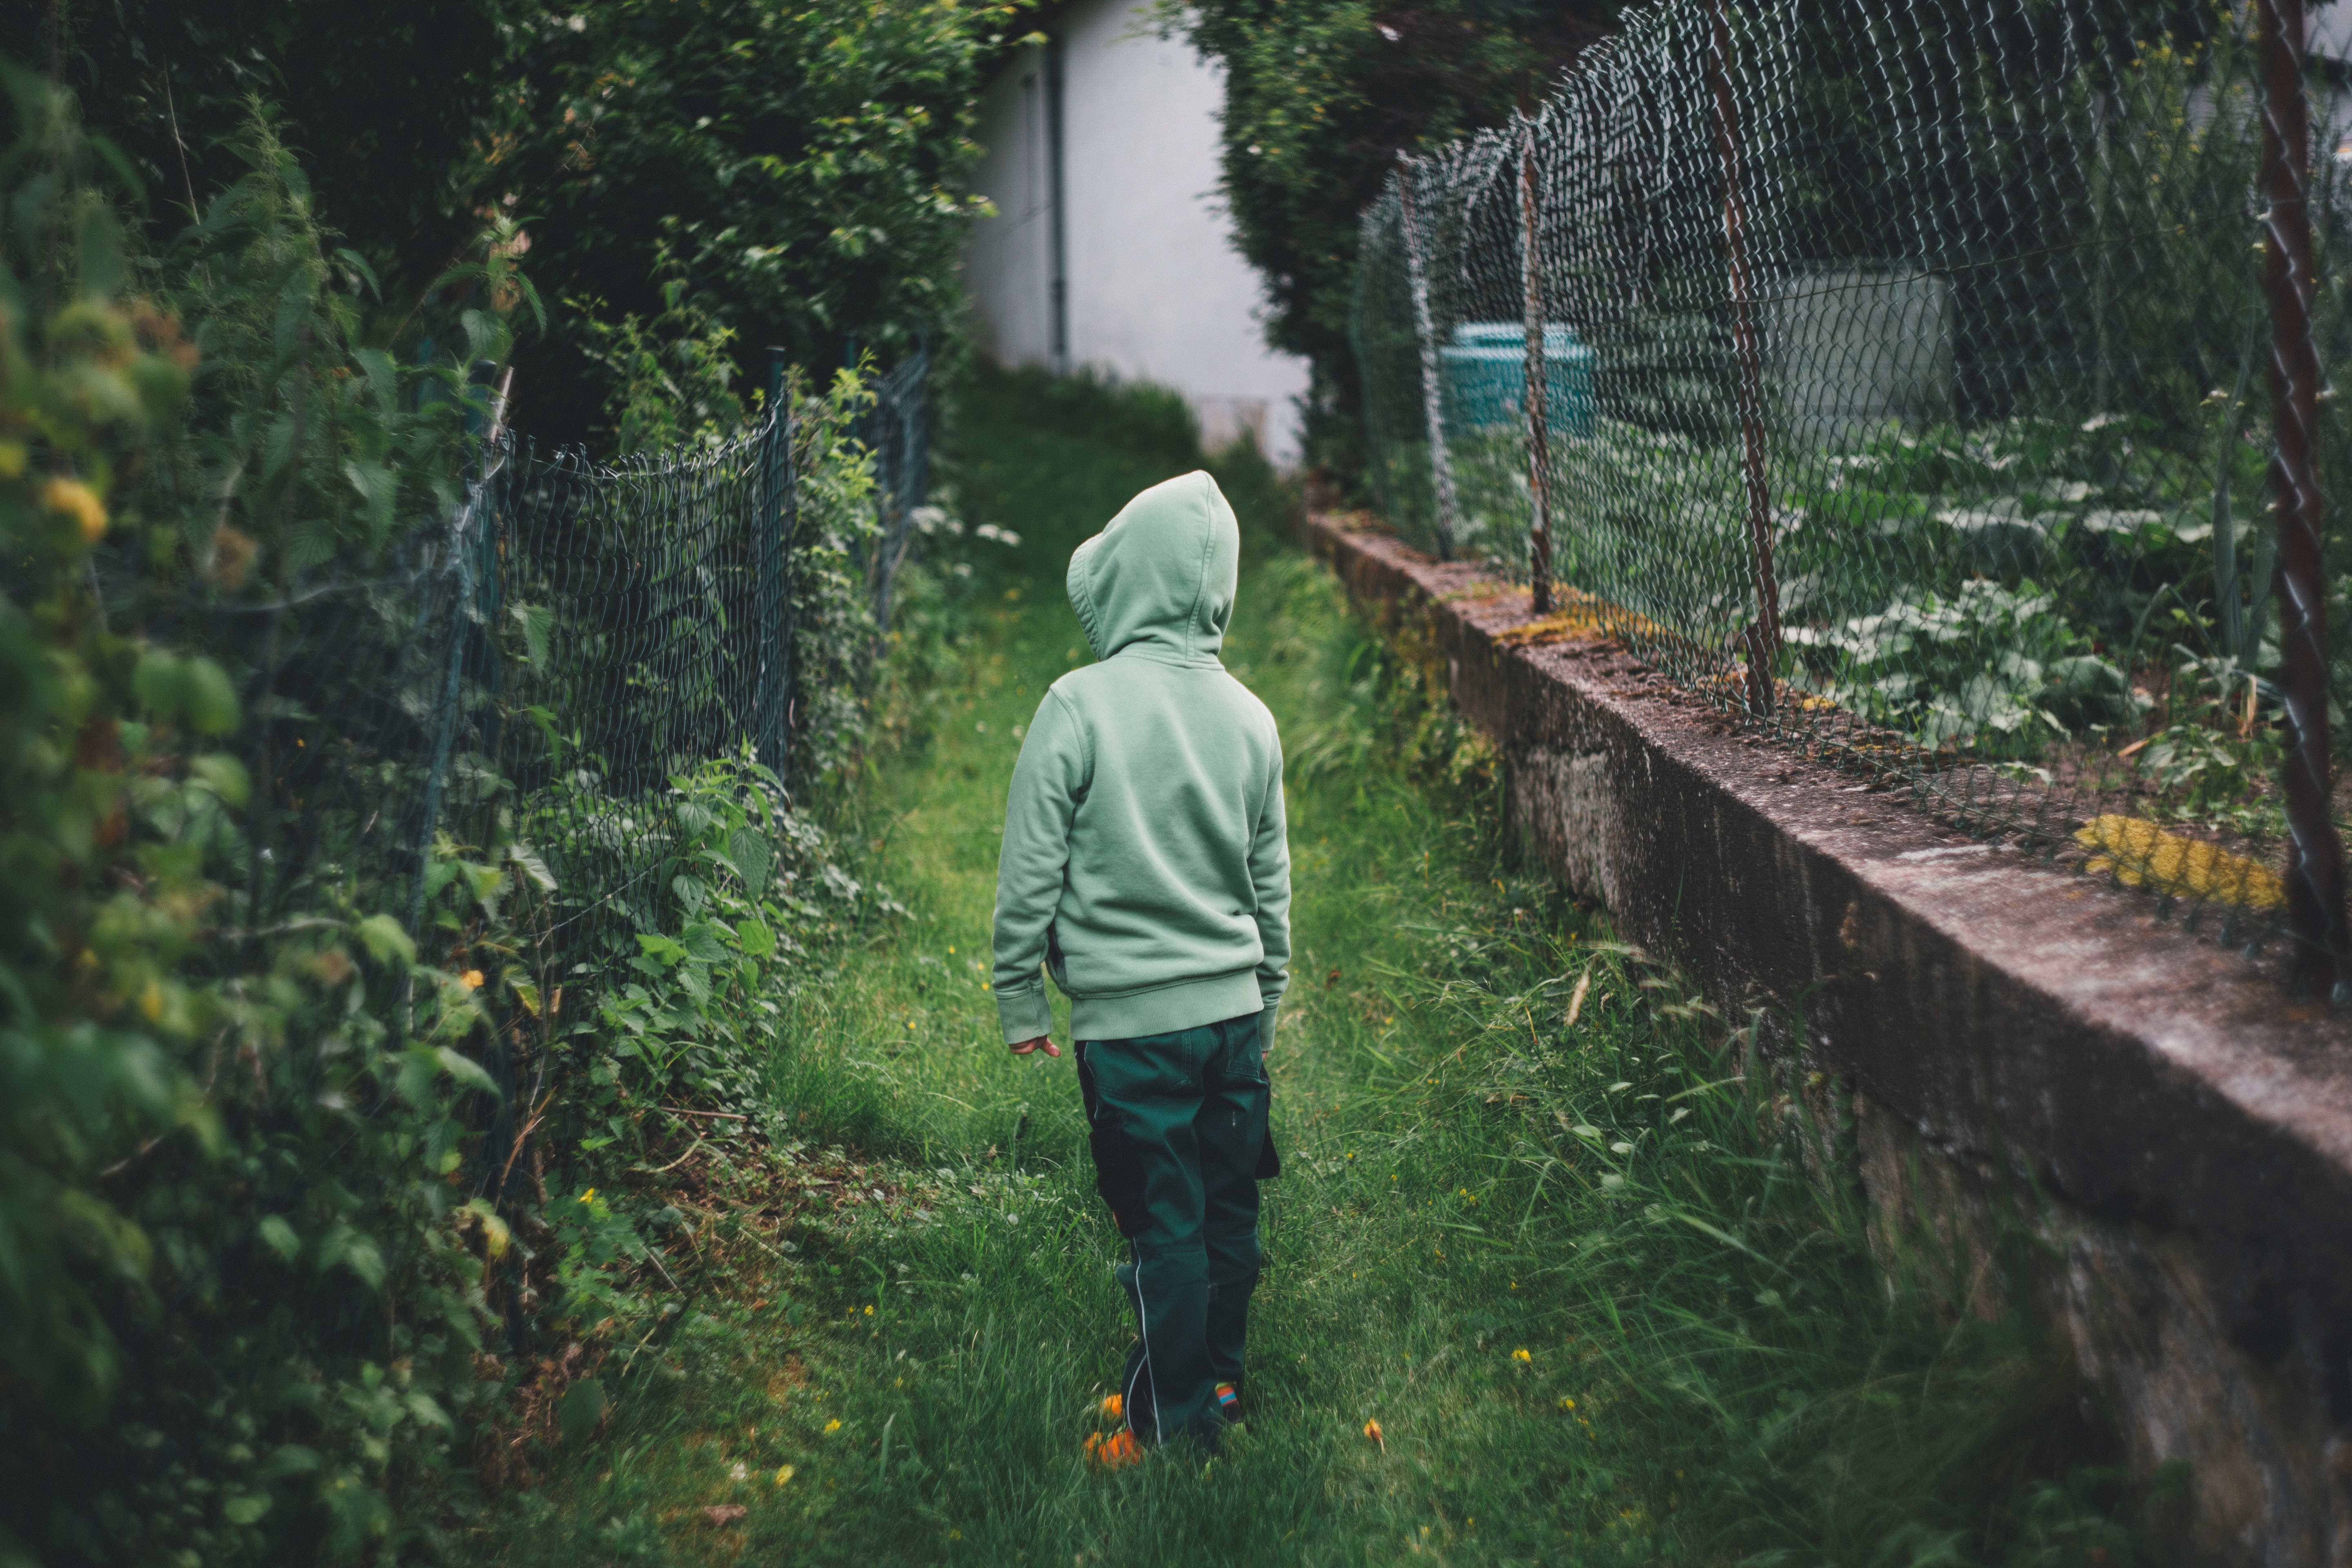 boy standing on grass and facing fence during daytime